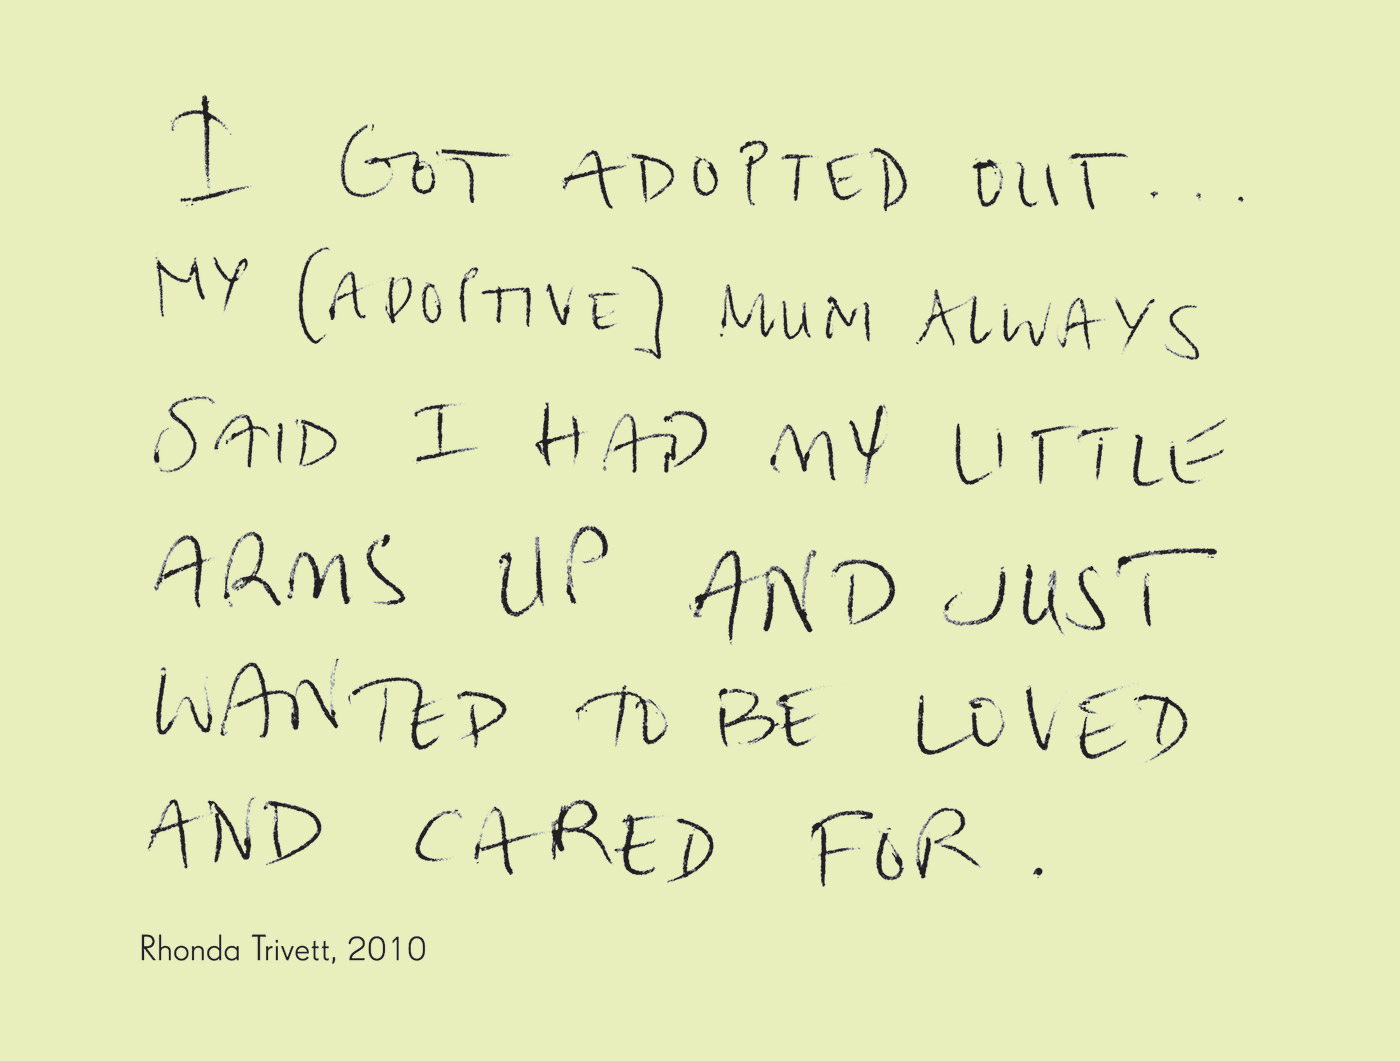 Exhibition graphic panel that reads: 'I got adopted out ... My [adoptive] mum always said I had my little arms up and just wanted to be loved and cared for,' attributed to 'Rhonda Trivett, 2010'. - click to view larger image